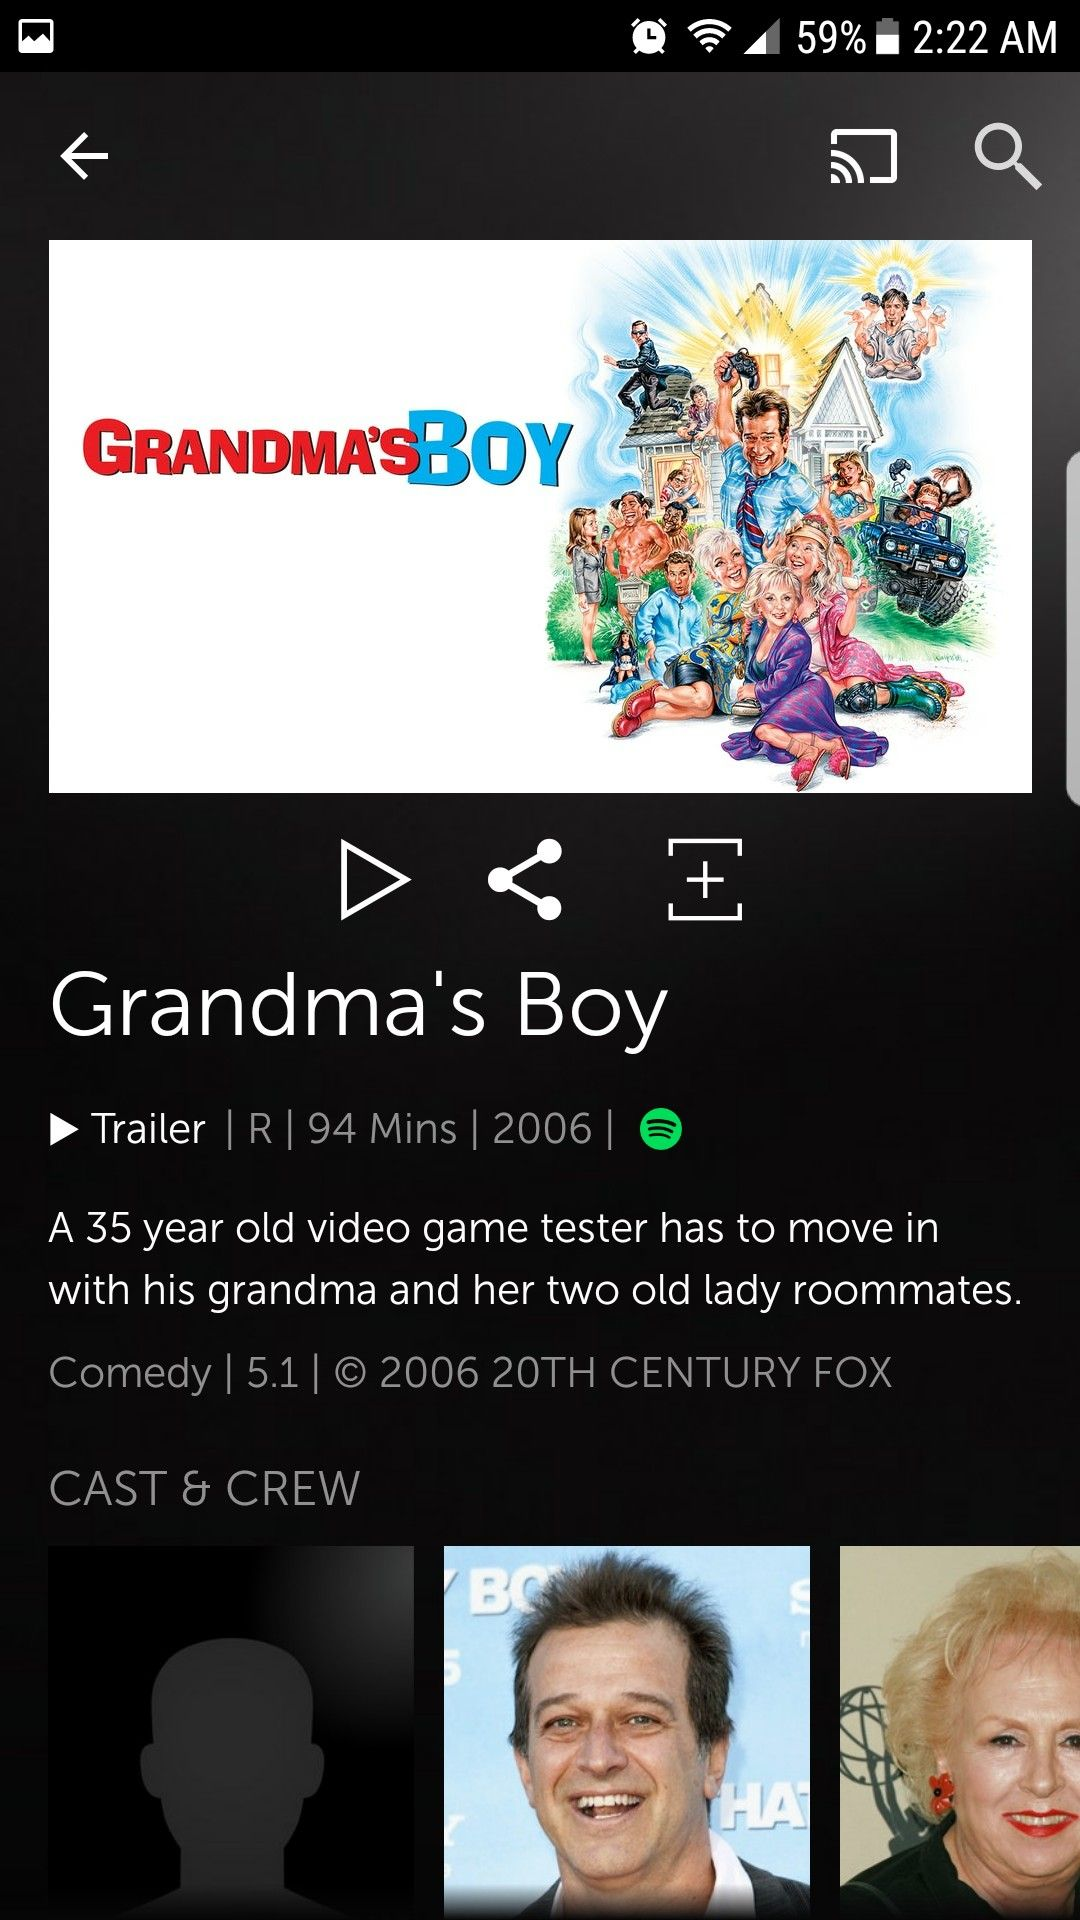 Pin By Kristin Castillo On Movies Old Video Video Game Tester Grandma S Boy